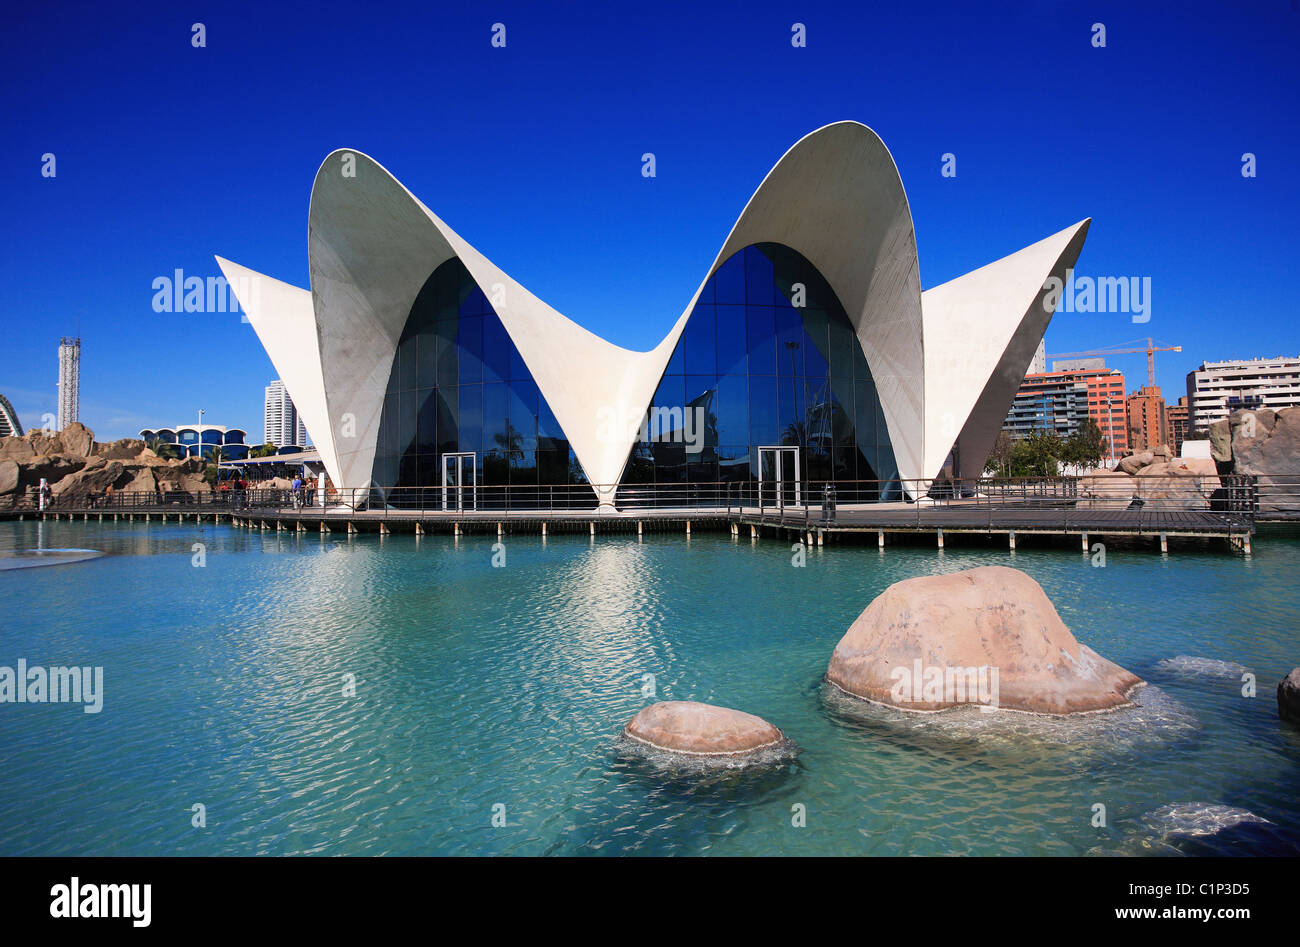 Spain, Valencia, City of Arts and Sciences by the Architect Santiago Stock Ph...